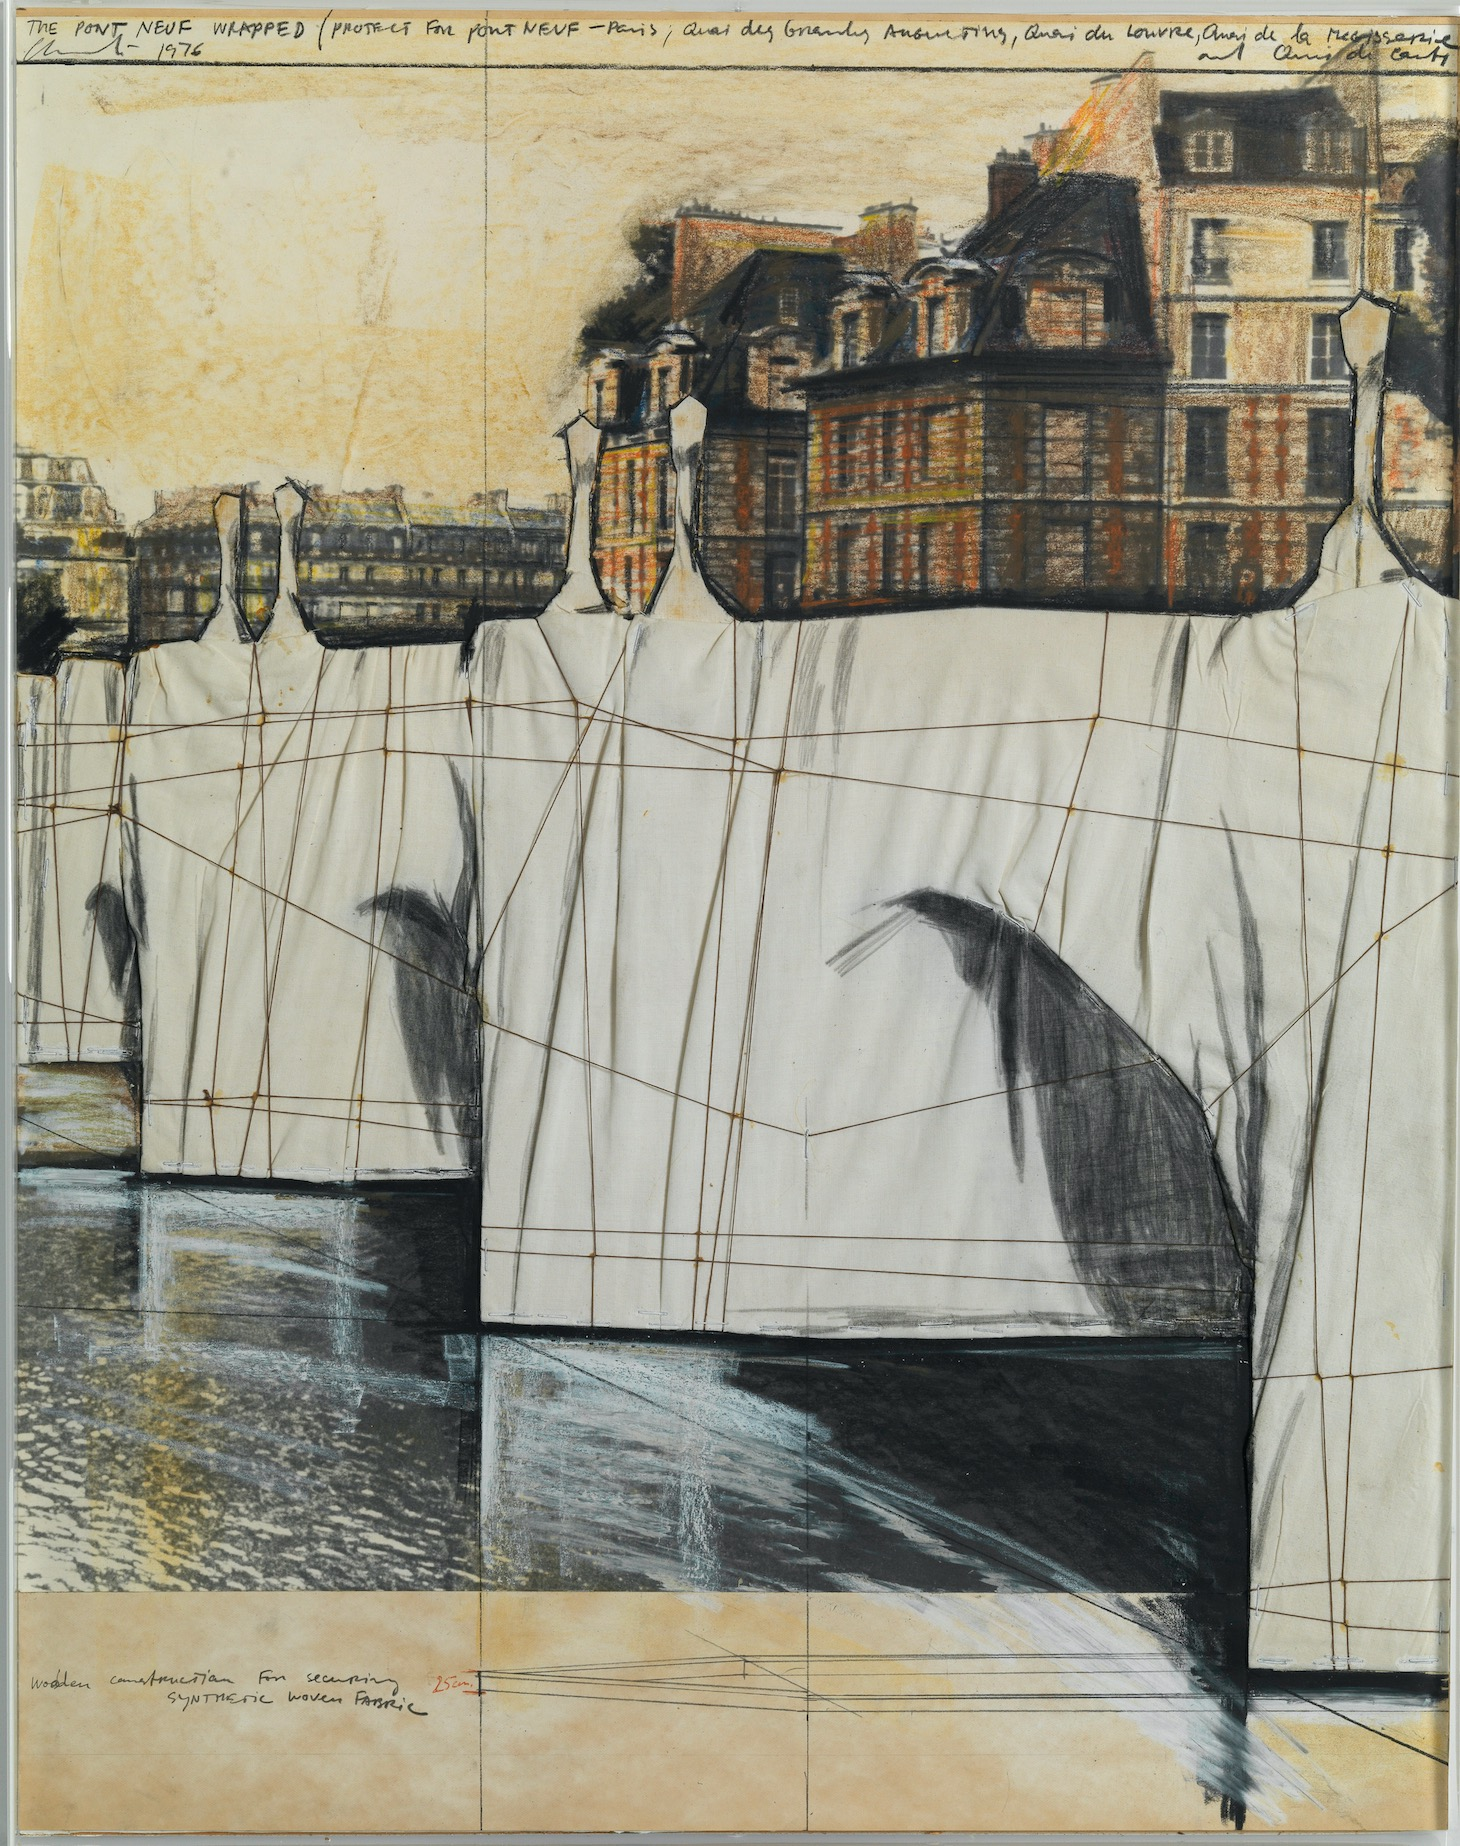 17. The Pont Neuf Wrapped Project for Paris 1976